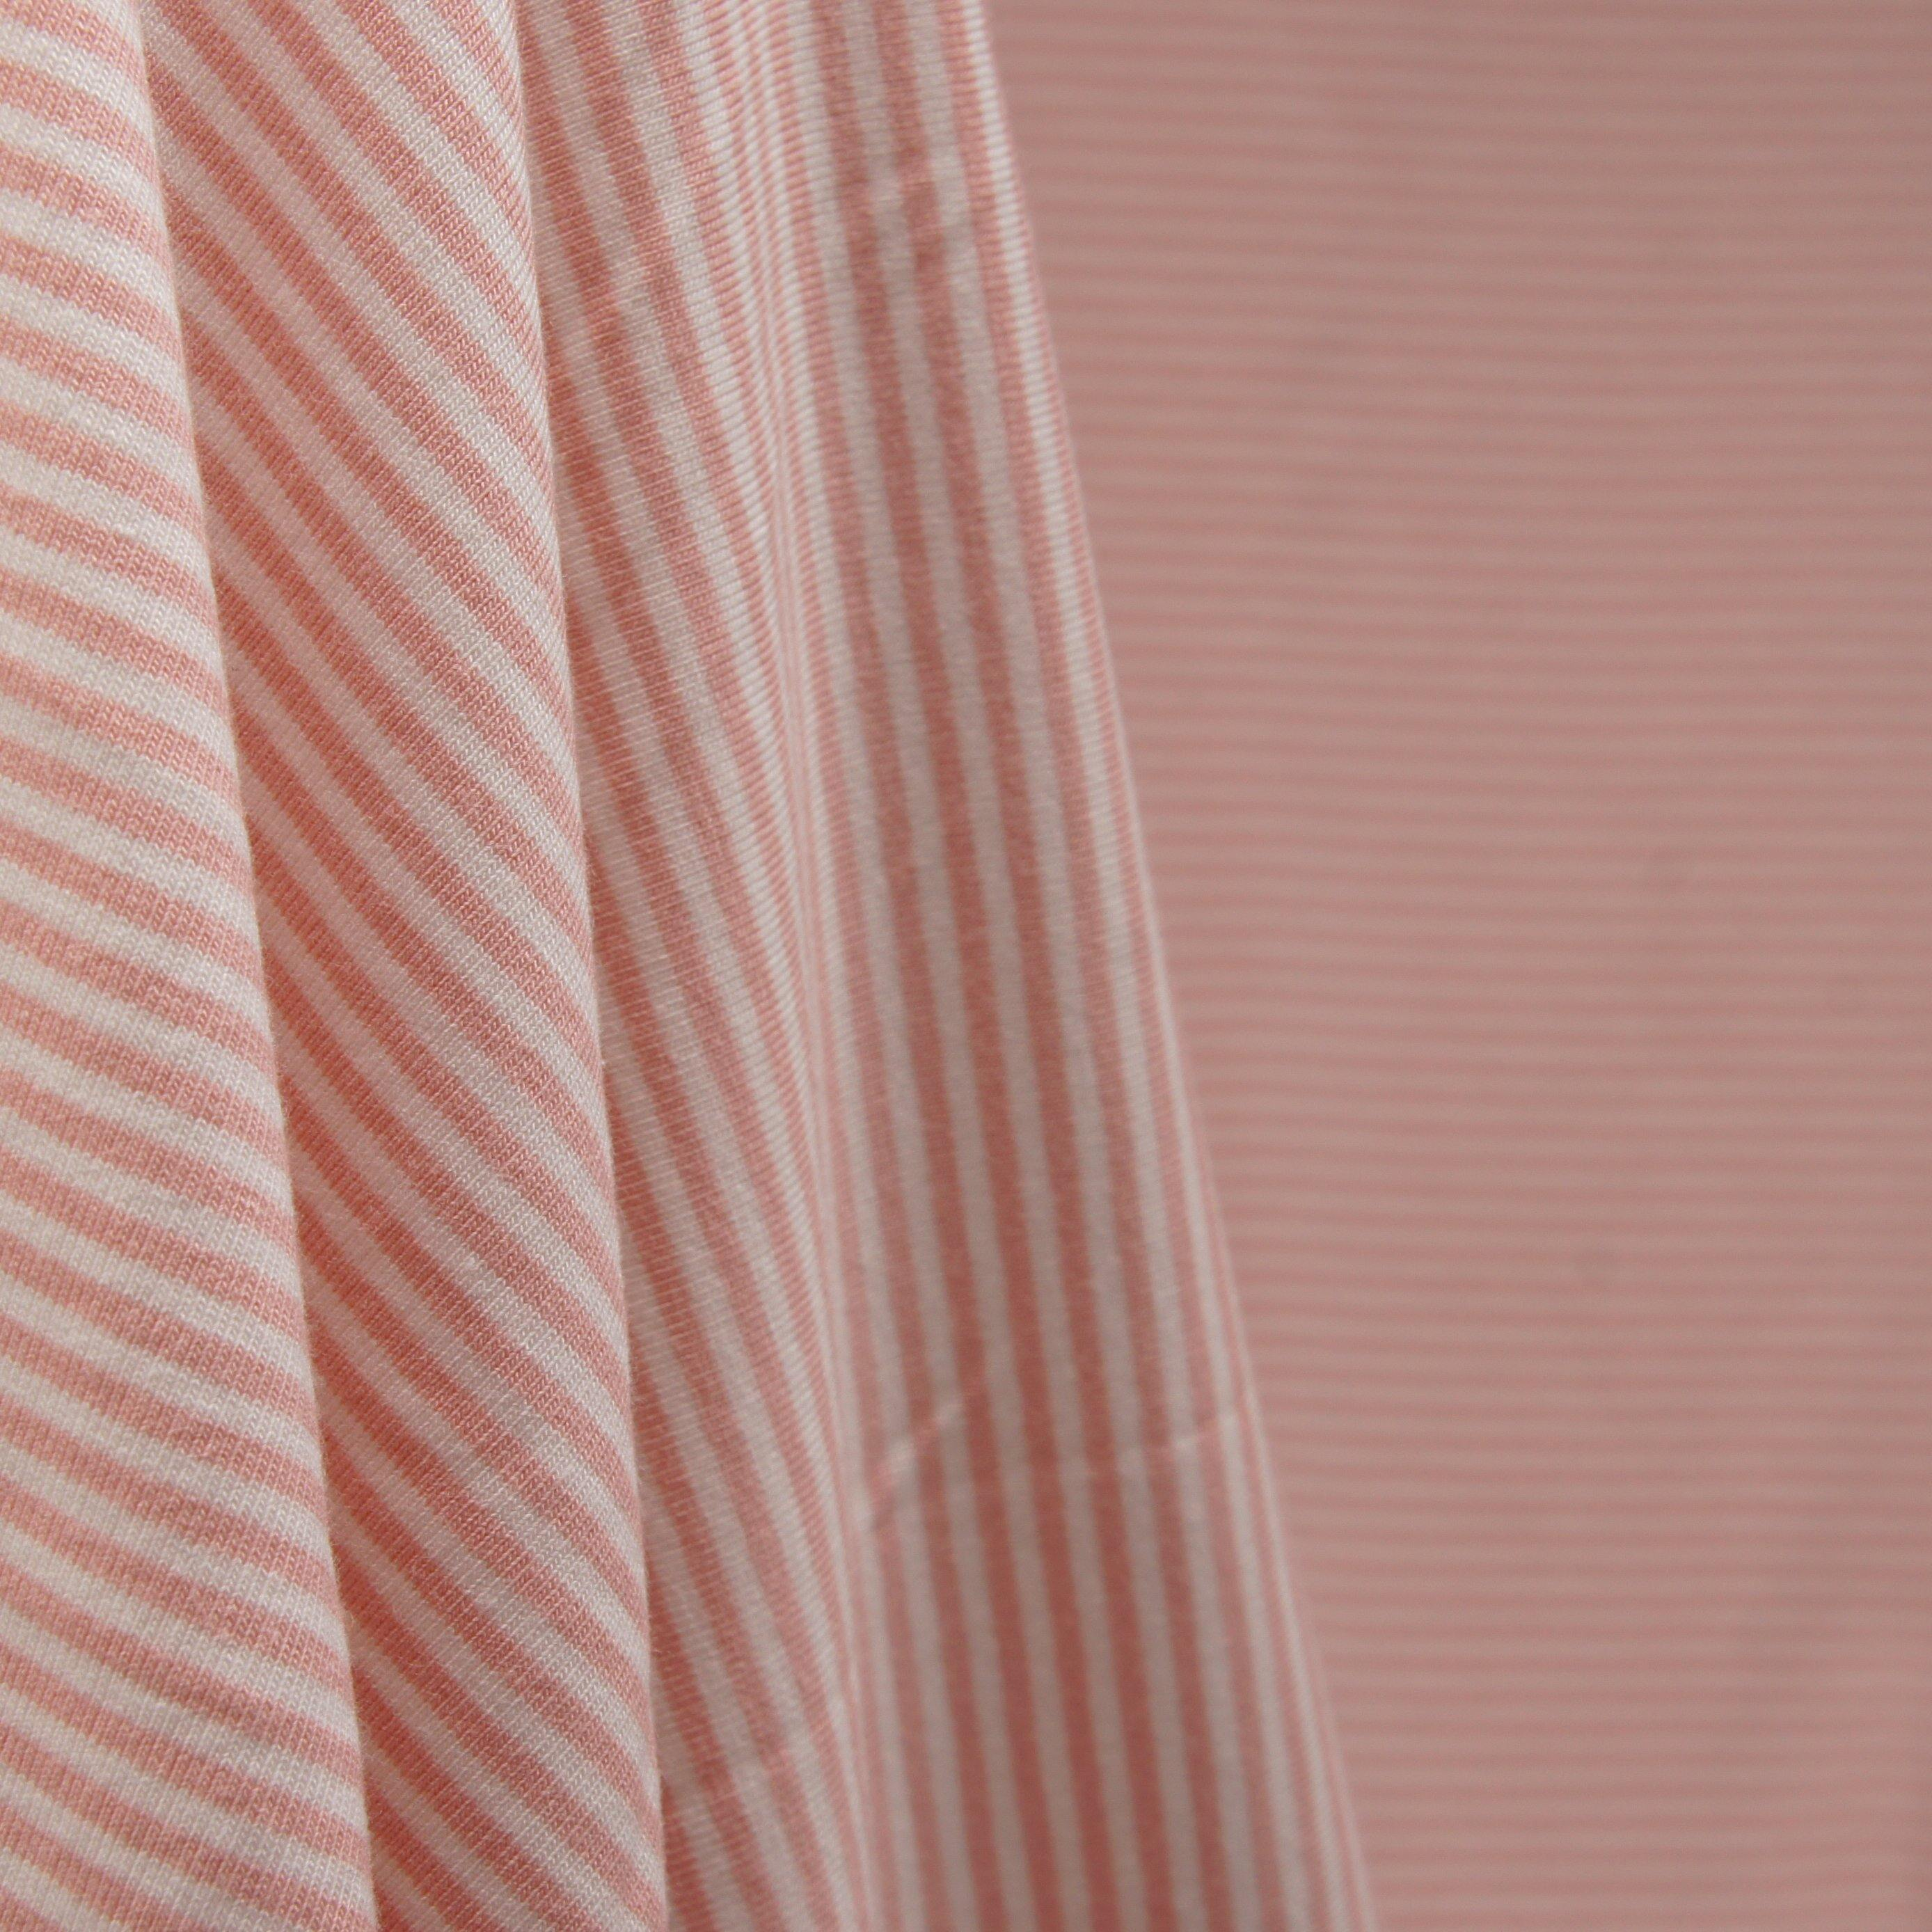 Bamboo Organic Cotton Spandex Jersey - Mellow Rose 2mm Stripes - Earth Indigo